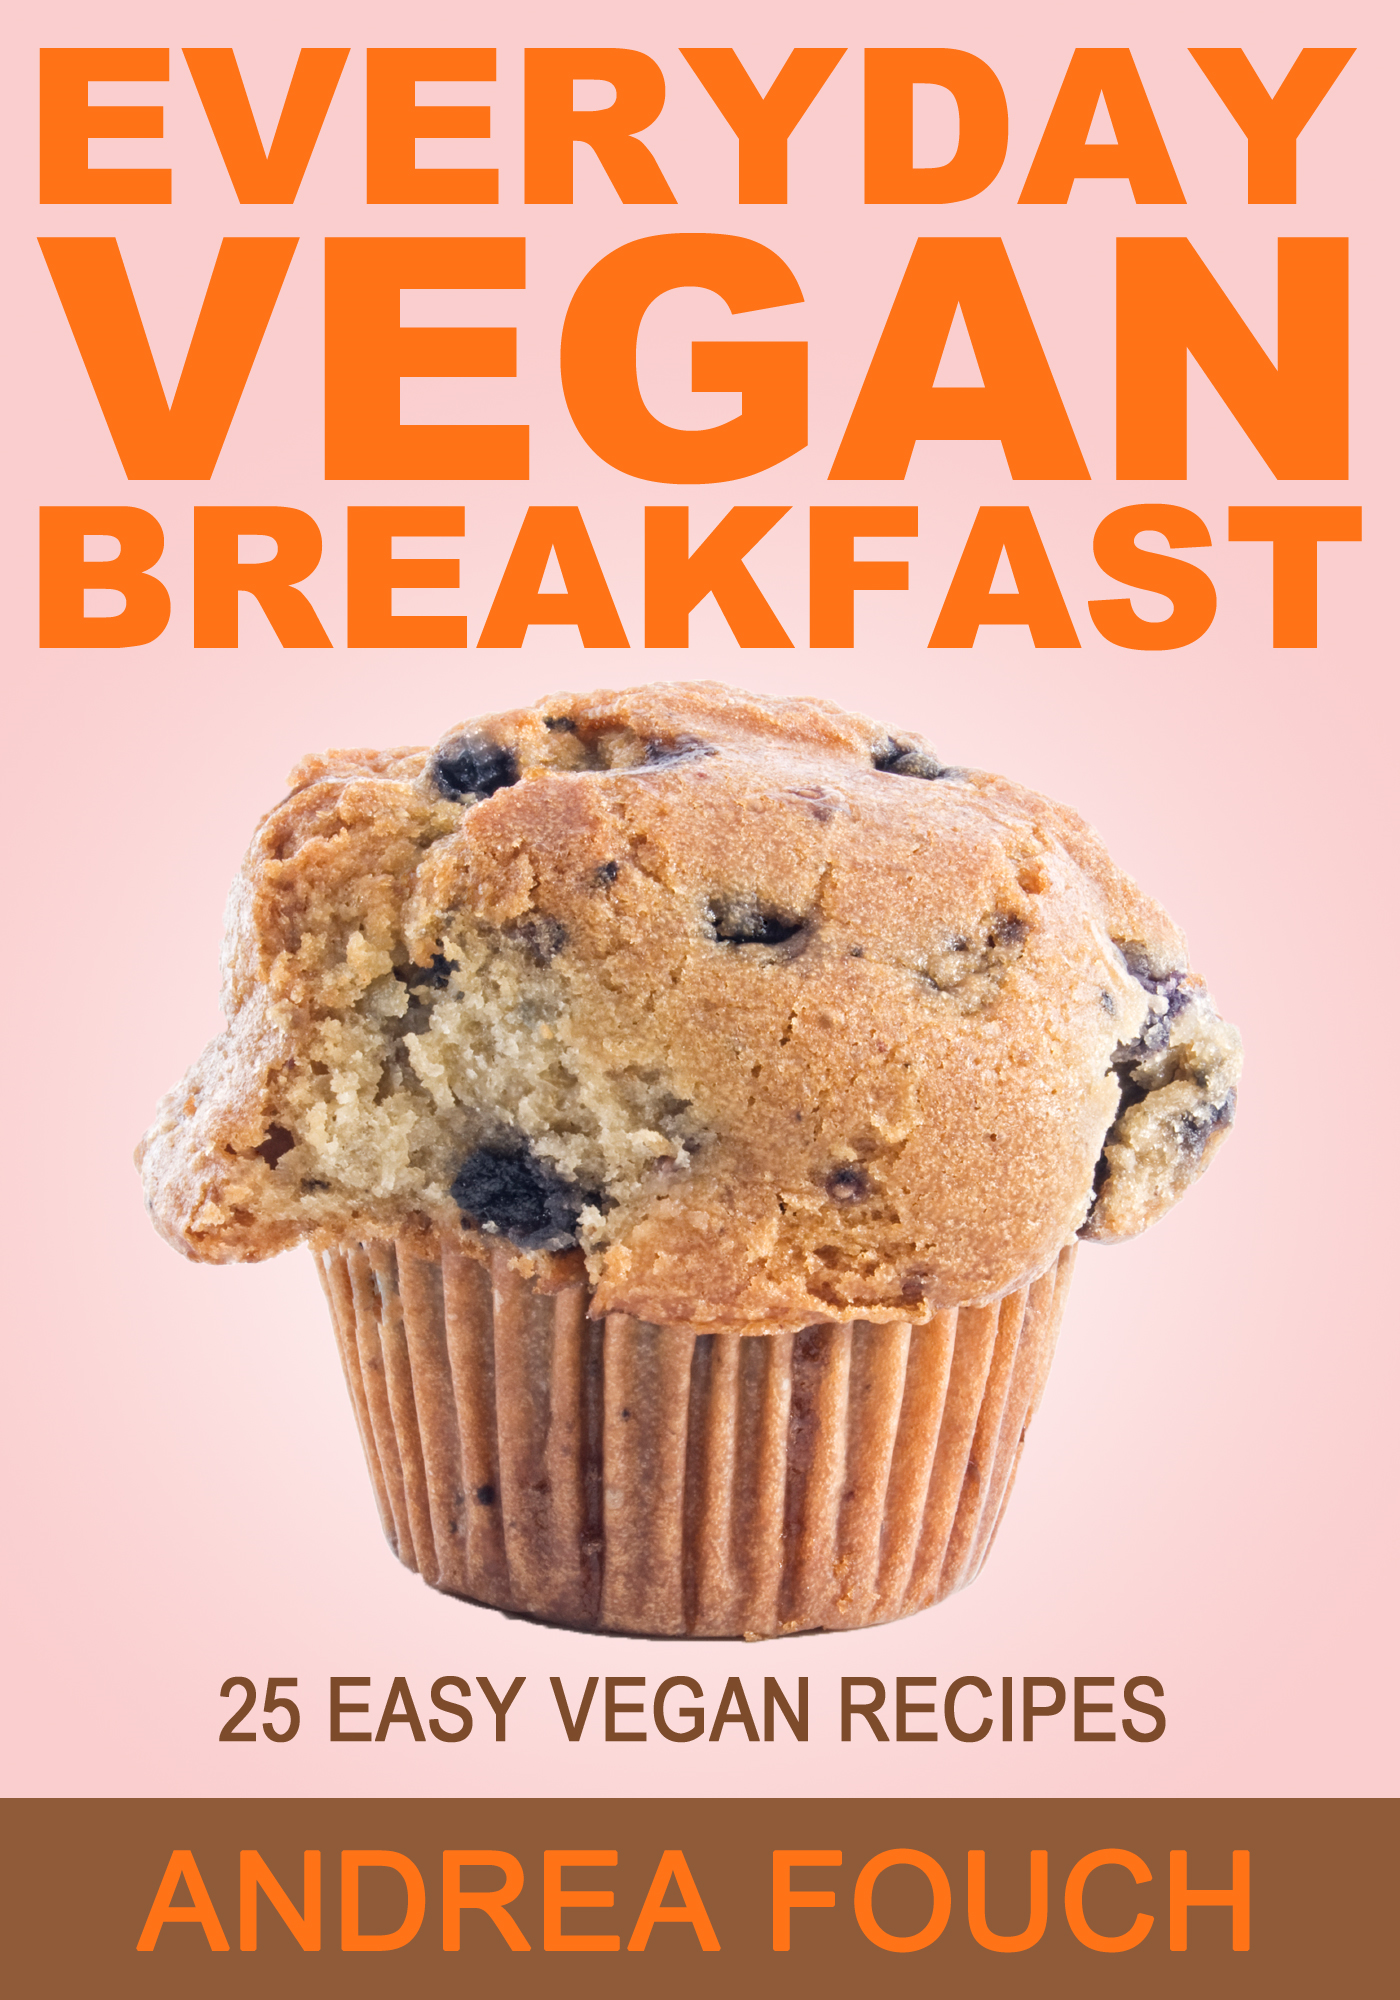 Everyday Vegan Breakfast: 25 Easy to Make Vegan Breakfast Recipes